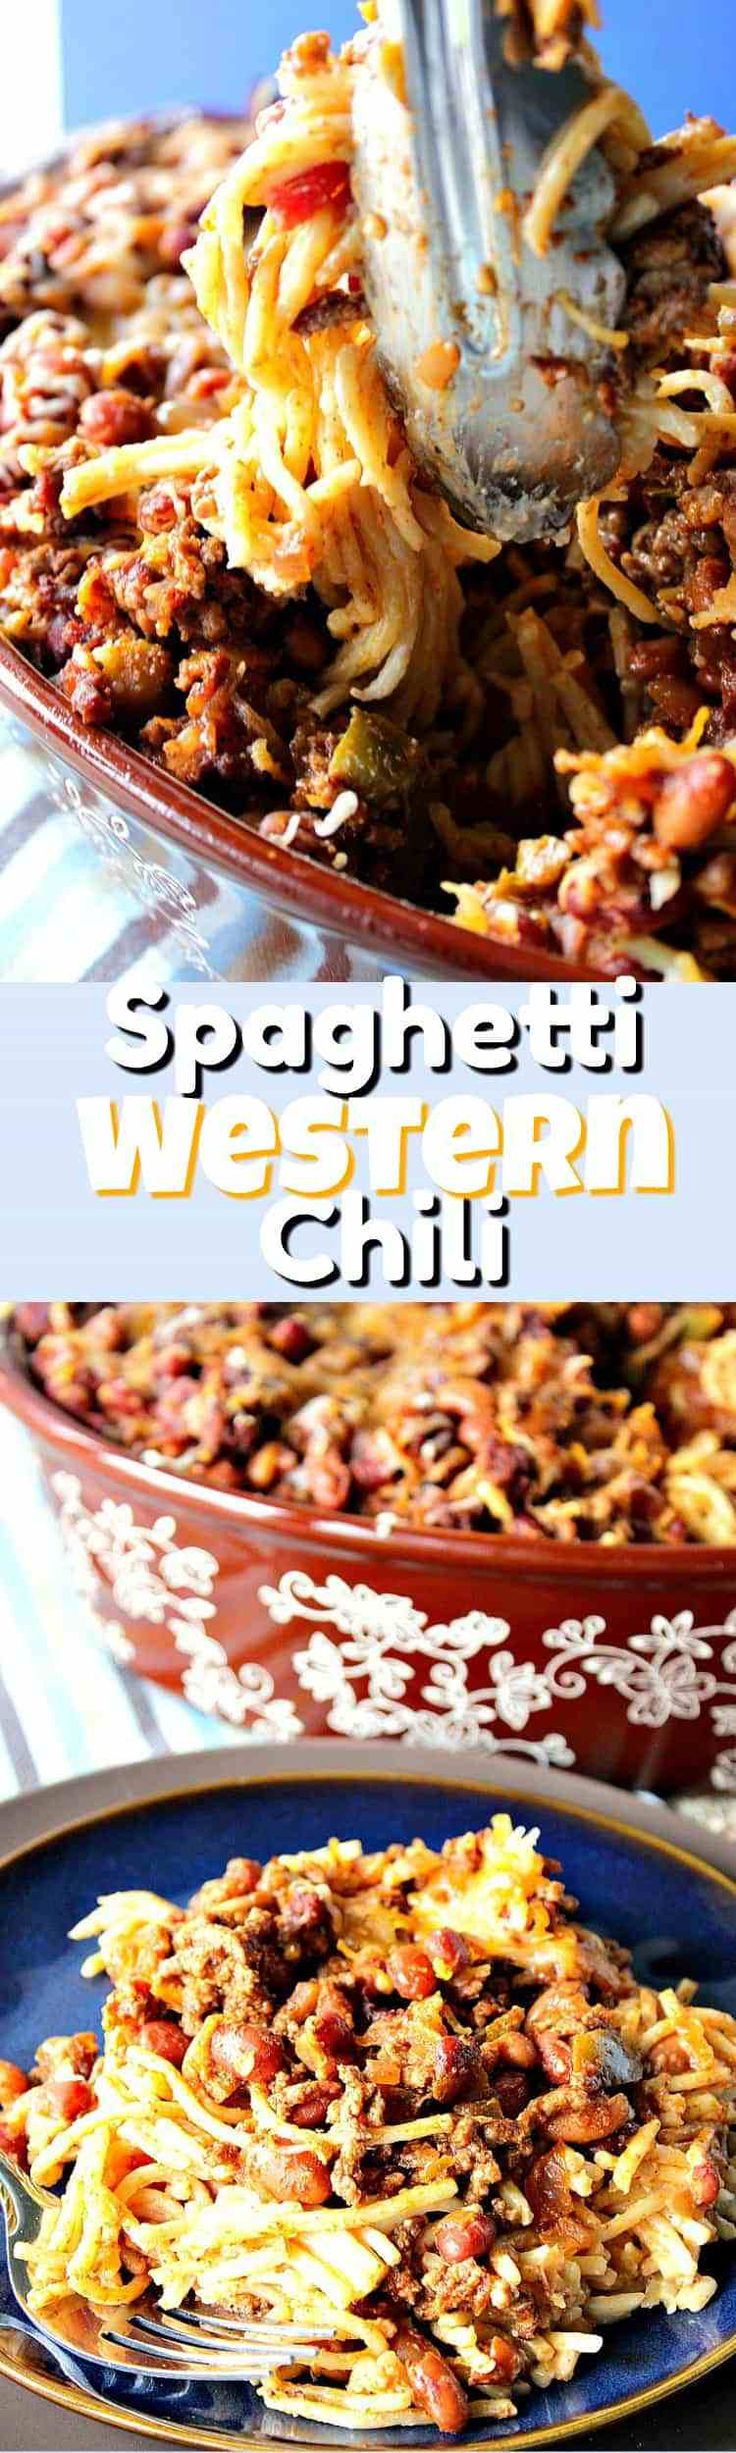 This Spaghetti Western Chili Casserole is quick to make (30 minutes or less) and can be made in advance, which is always a plus during the busy holiday season. - Kudos Kitchen by Renee  #SundaySupper